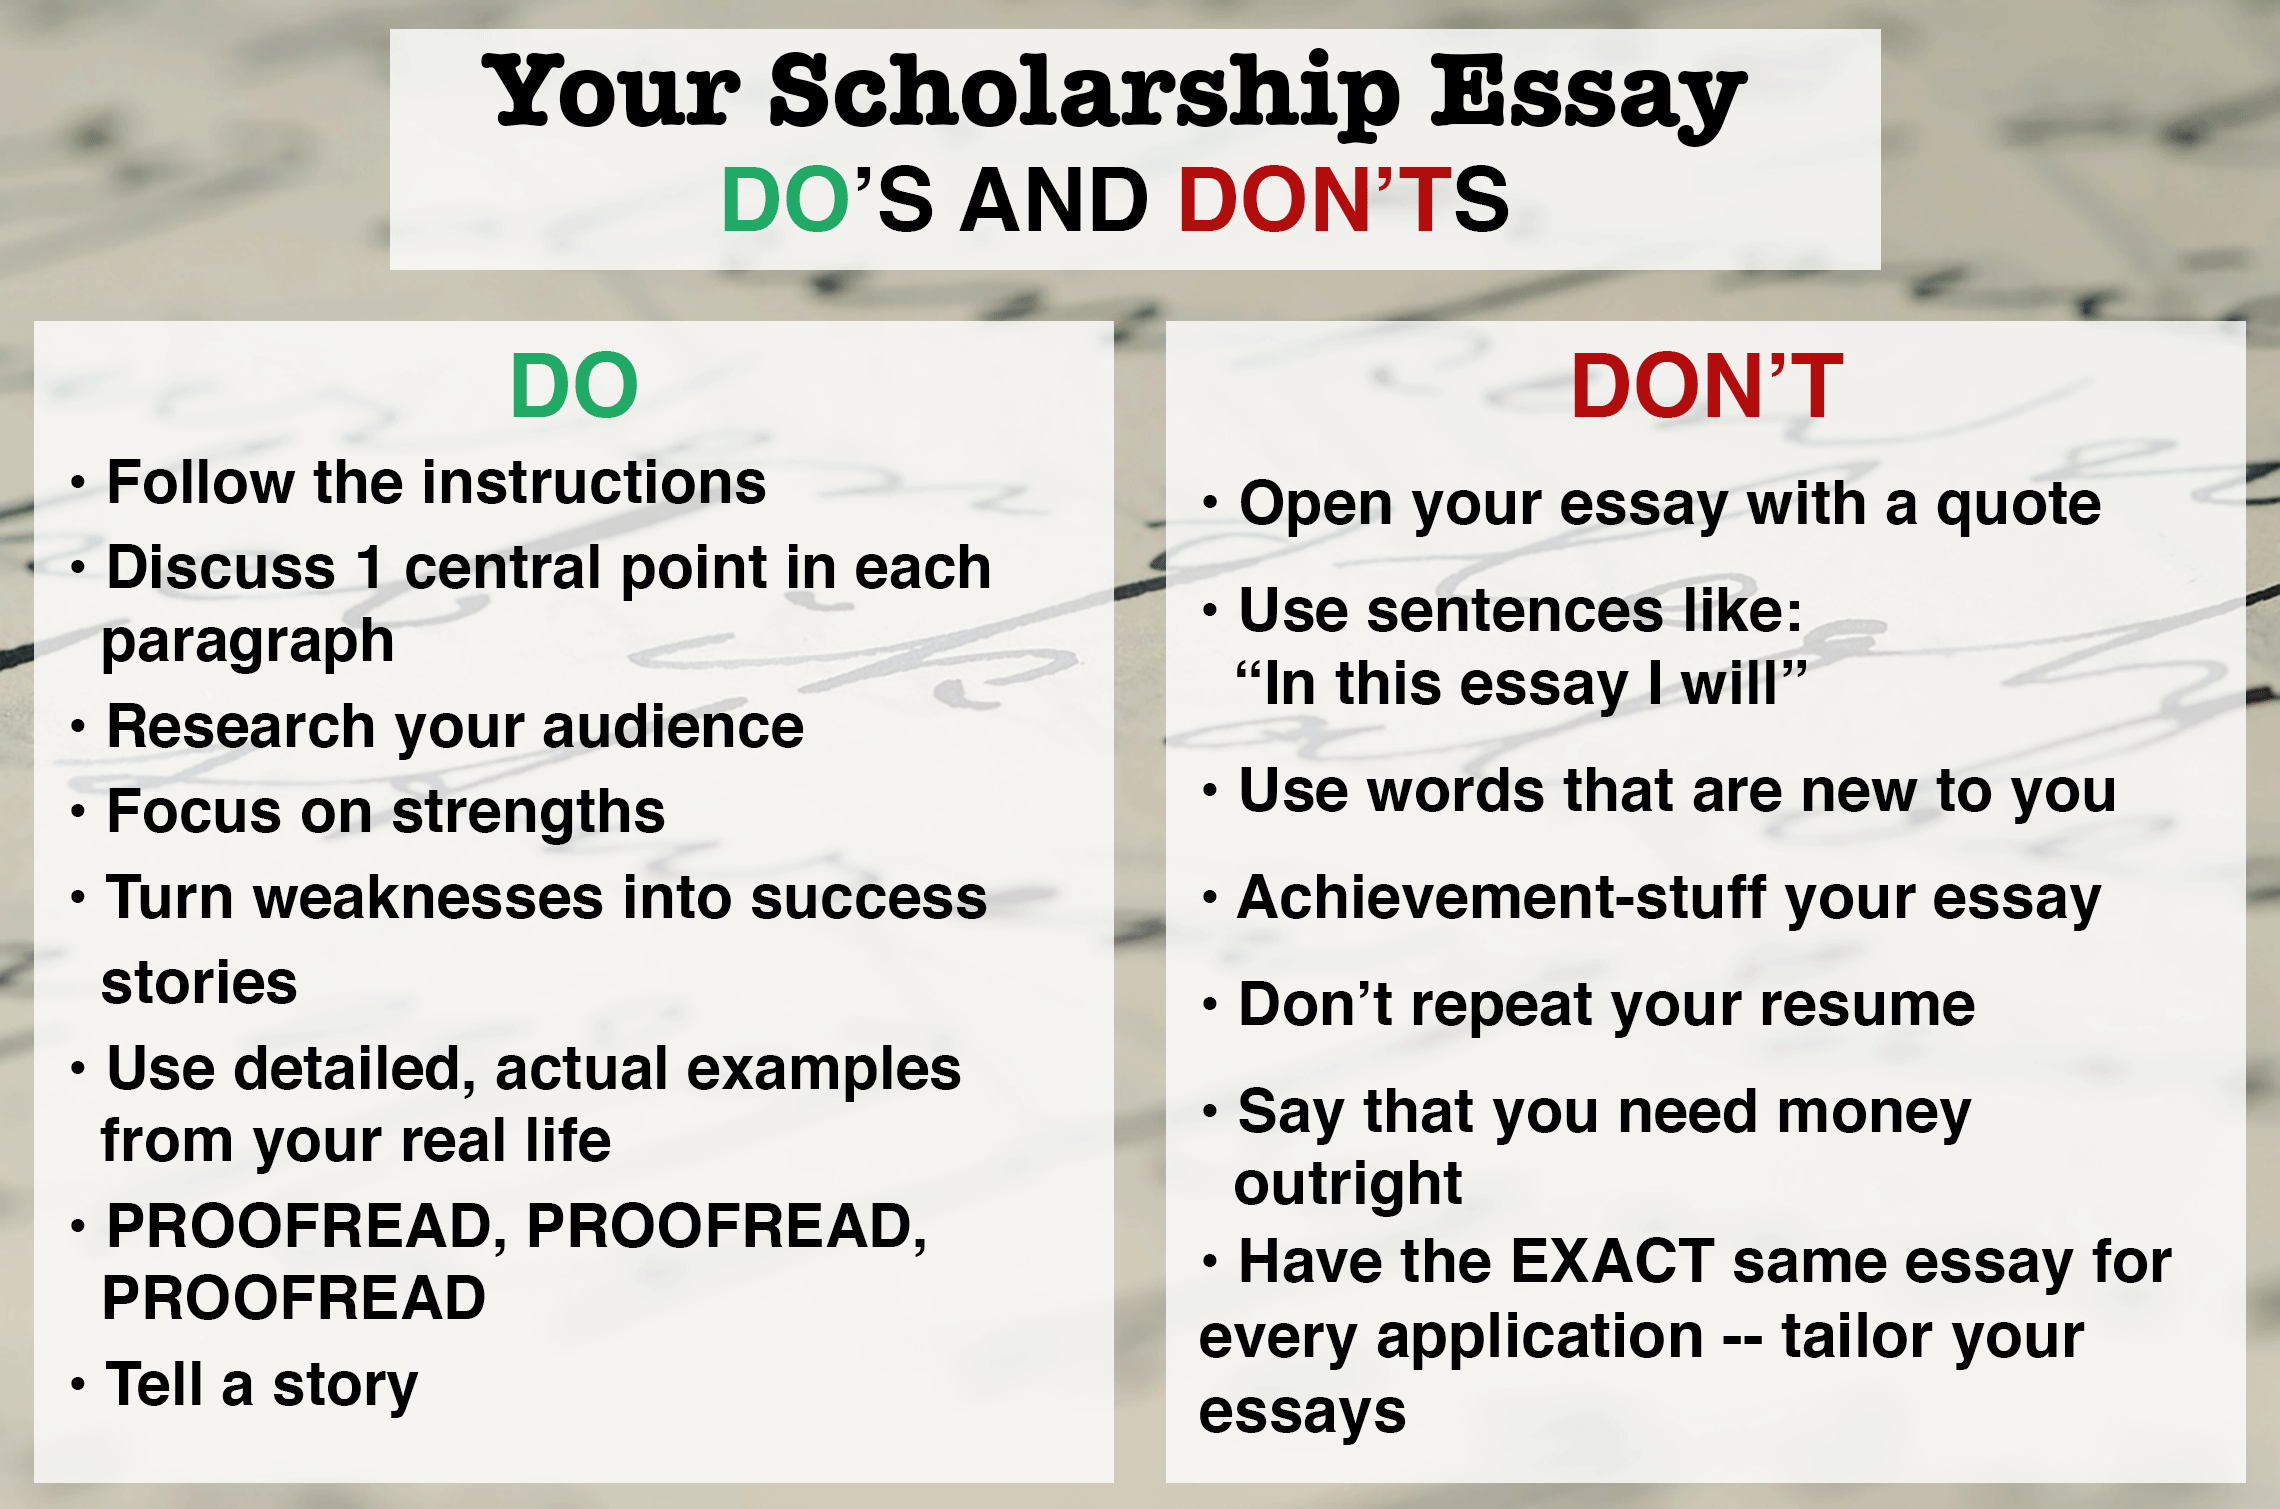 scholarship essay dos and donts